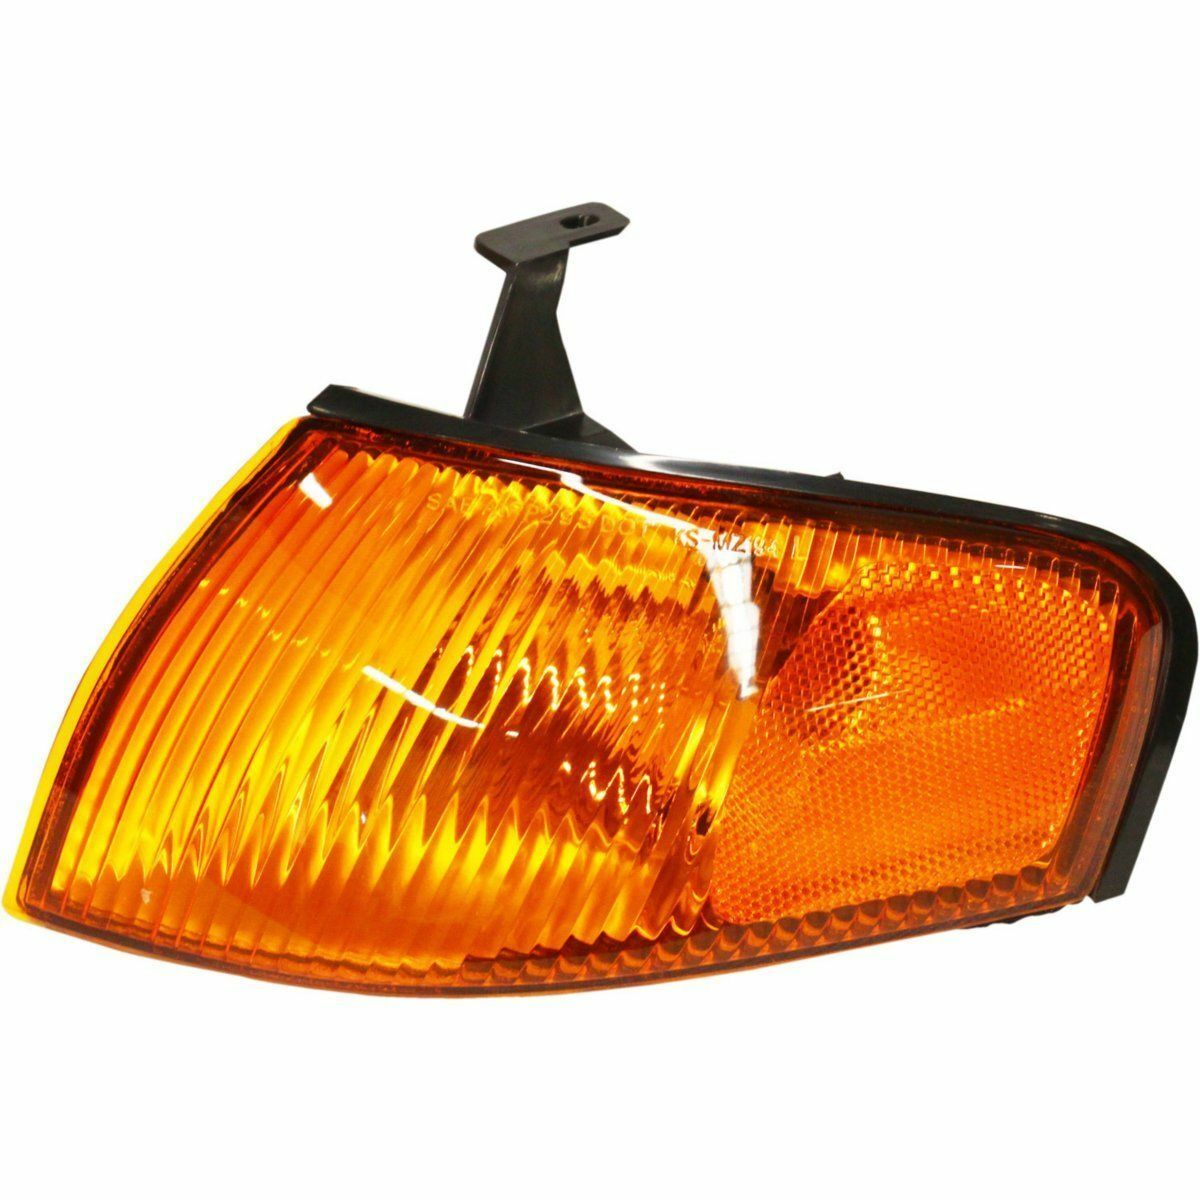 New Driver Side Corner Parking Signal Light For 97-98 Mazda Protege BG1N51070B